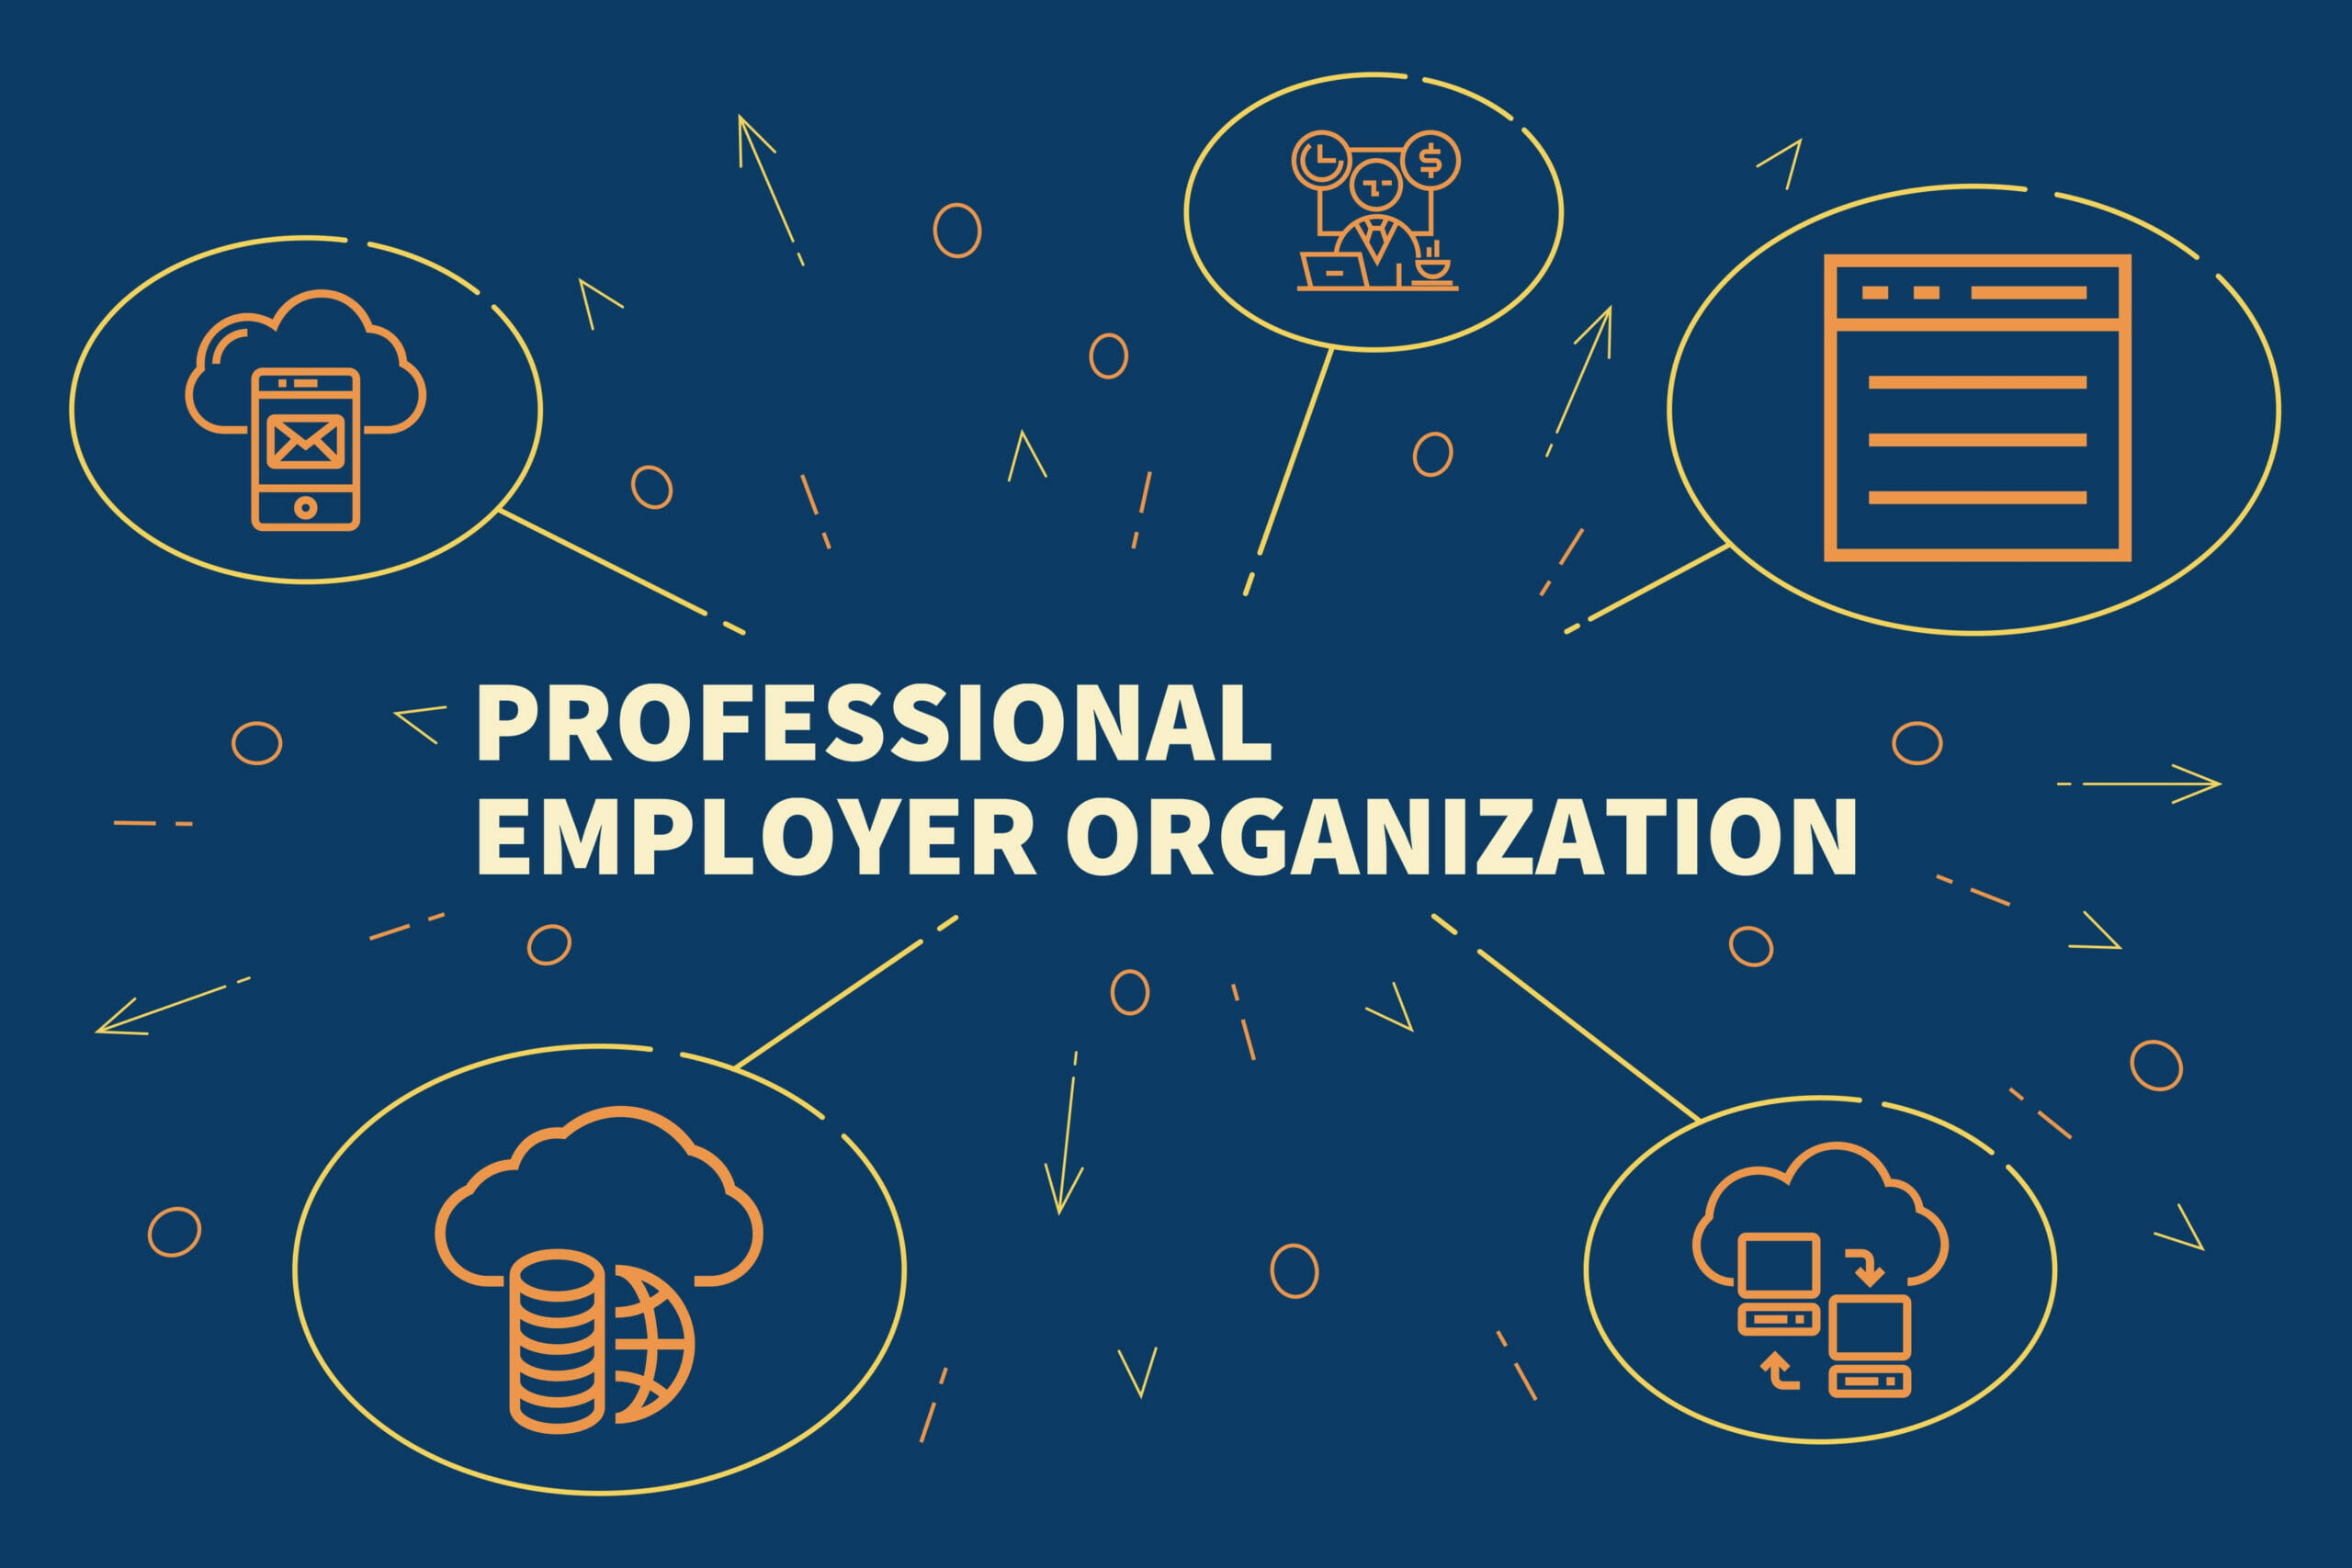 Professional Employer Organization